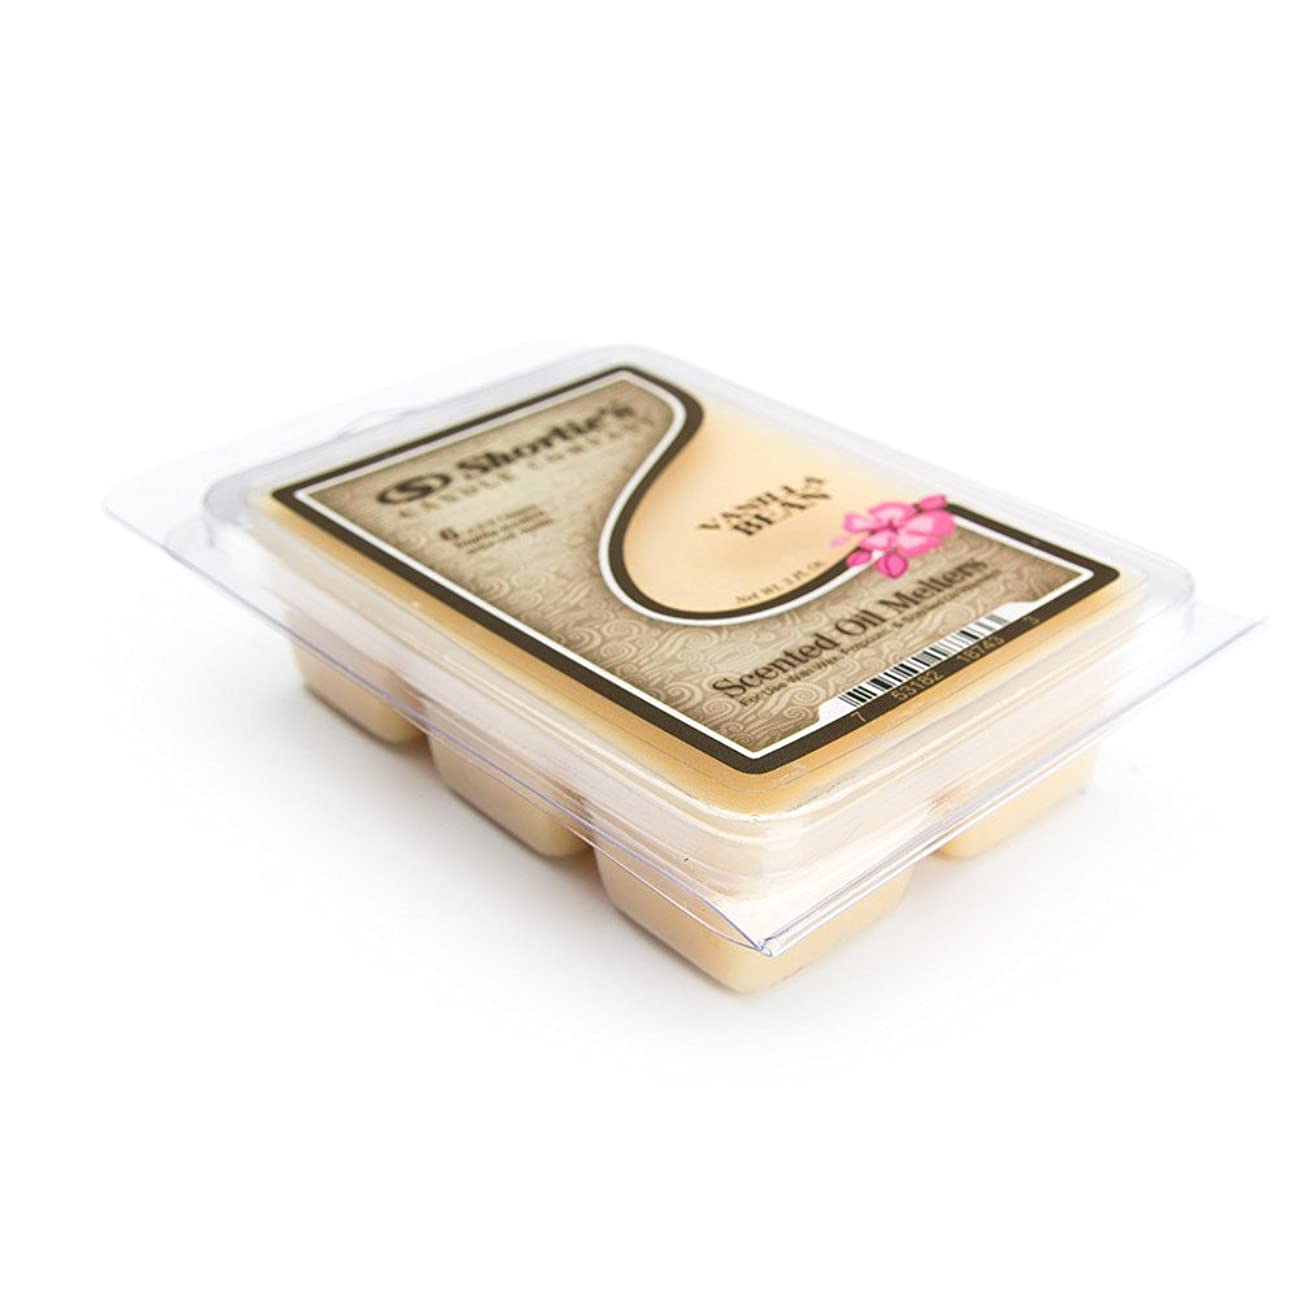 Shortie's Candle Company Vanilla Bean Wax Melts - 1 Highly Scented 3 Oz. Bar - Made with Natural Oils - Bakery & Food Air Freshener Cubes Collection